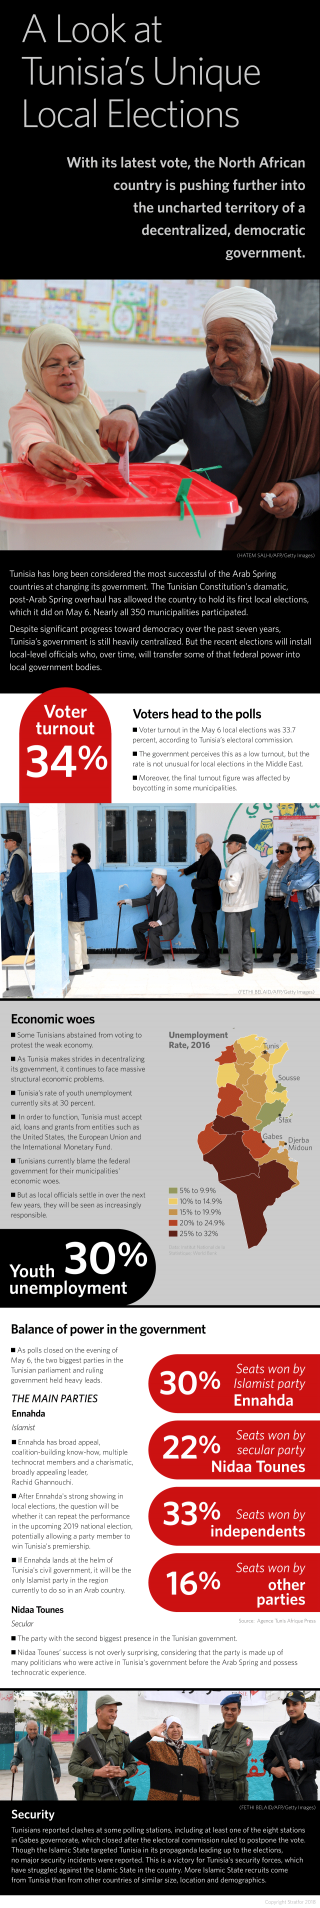 An infographic breaking down the important elements of Tunisia's most recent election.